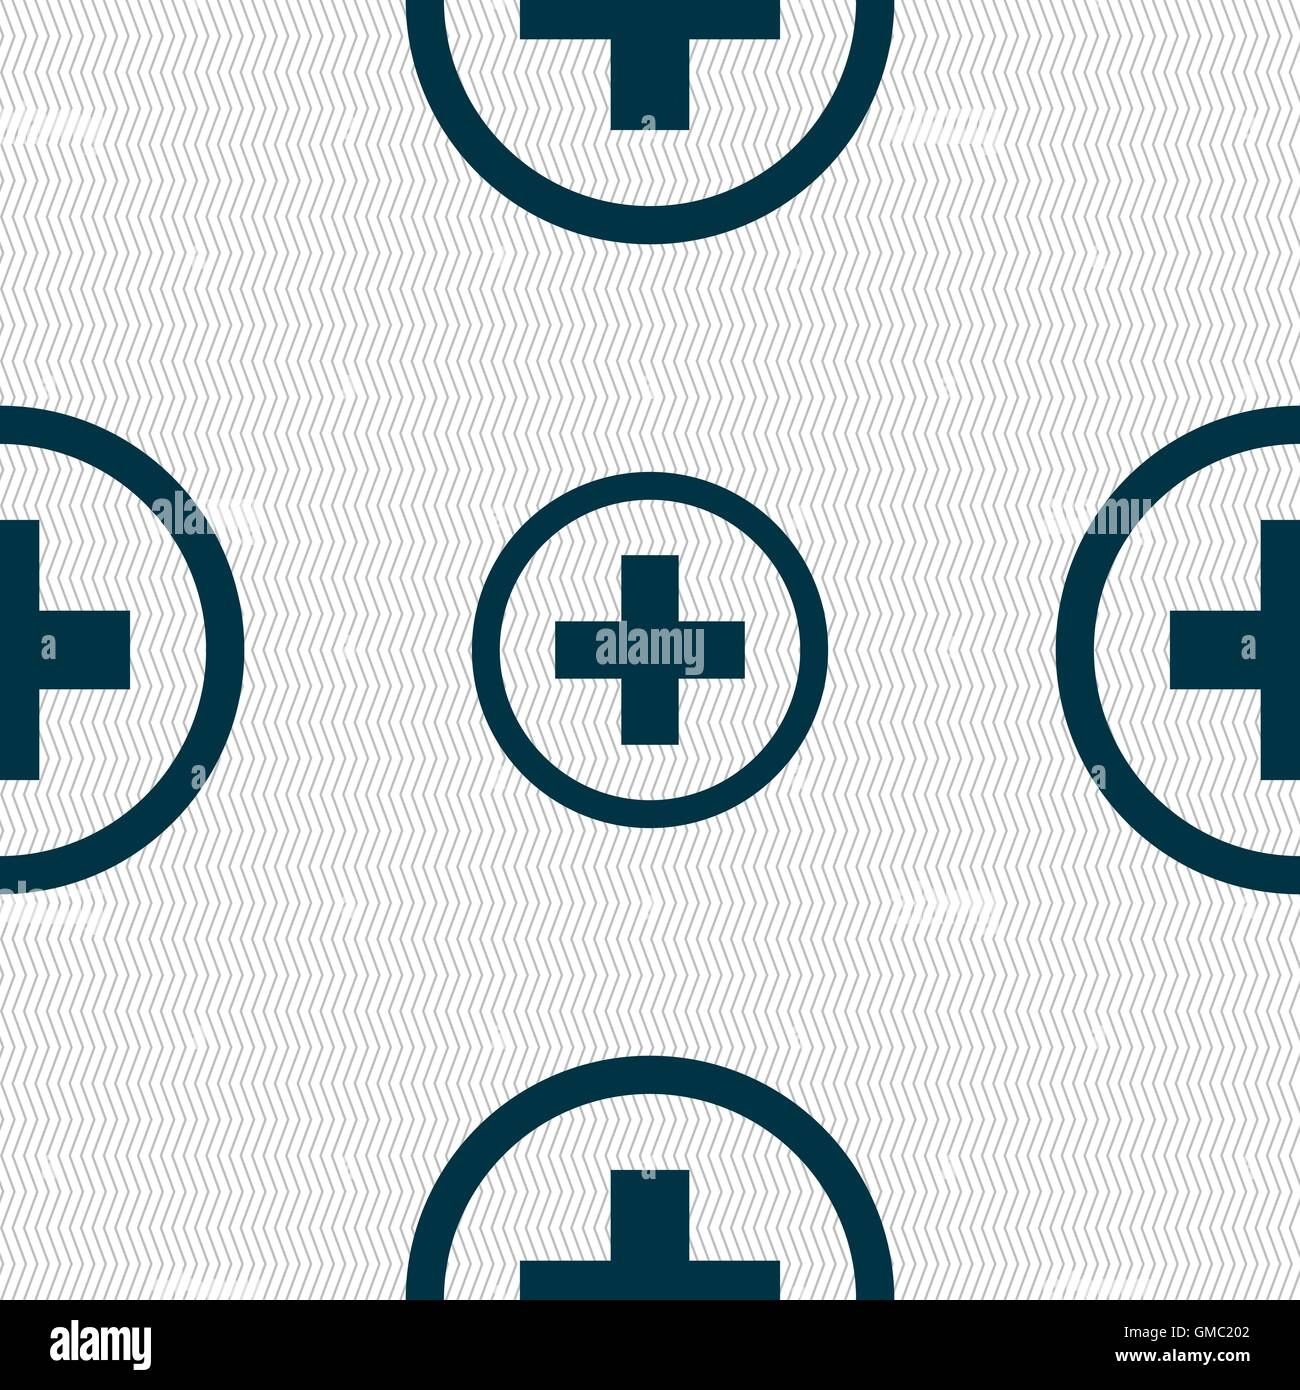 Plus sign icon positive symbol zoom in seamless abstract stock plus sign icon positive symbol zoom in seamless abstract background with geometric shapes vector biocorpaavc Choice Image